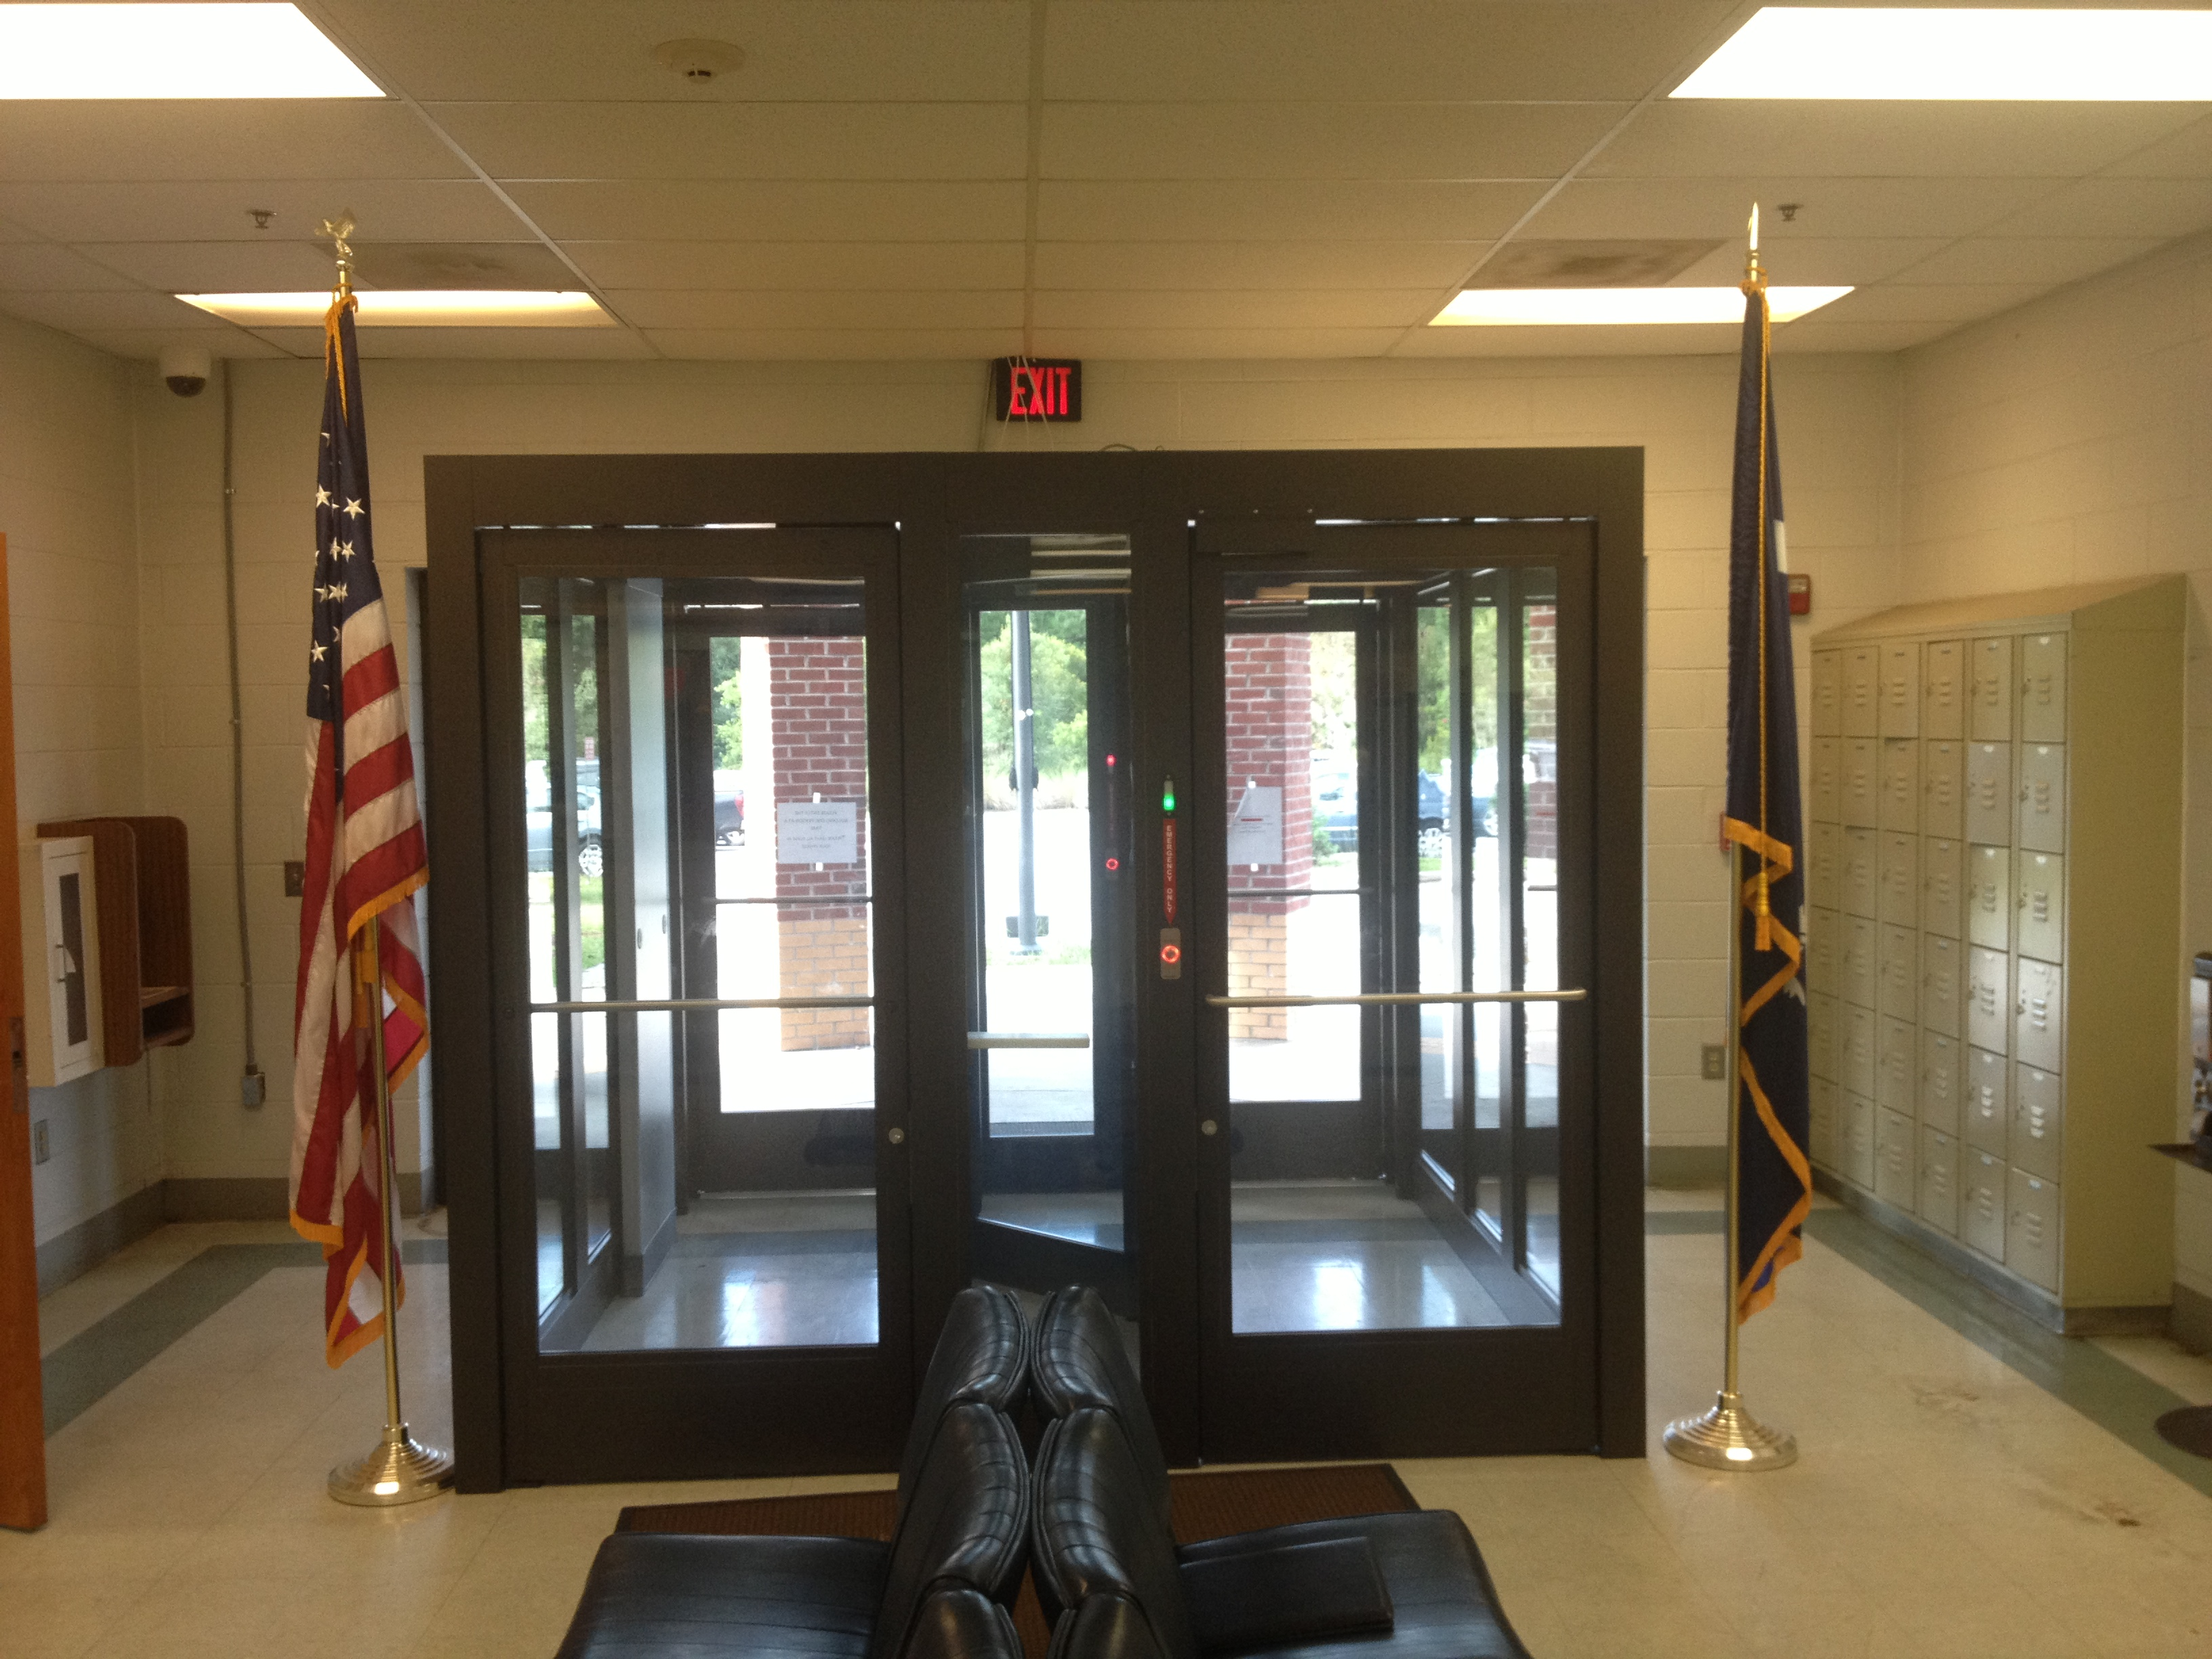 Two Lane Security Vestibule - Sheriff's Station